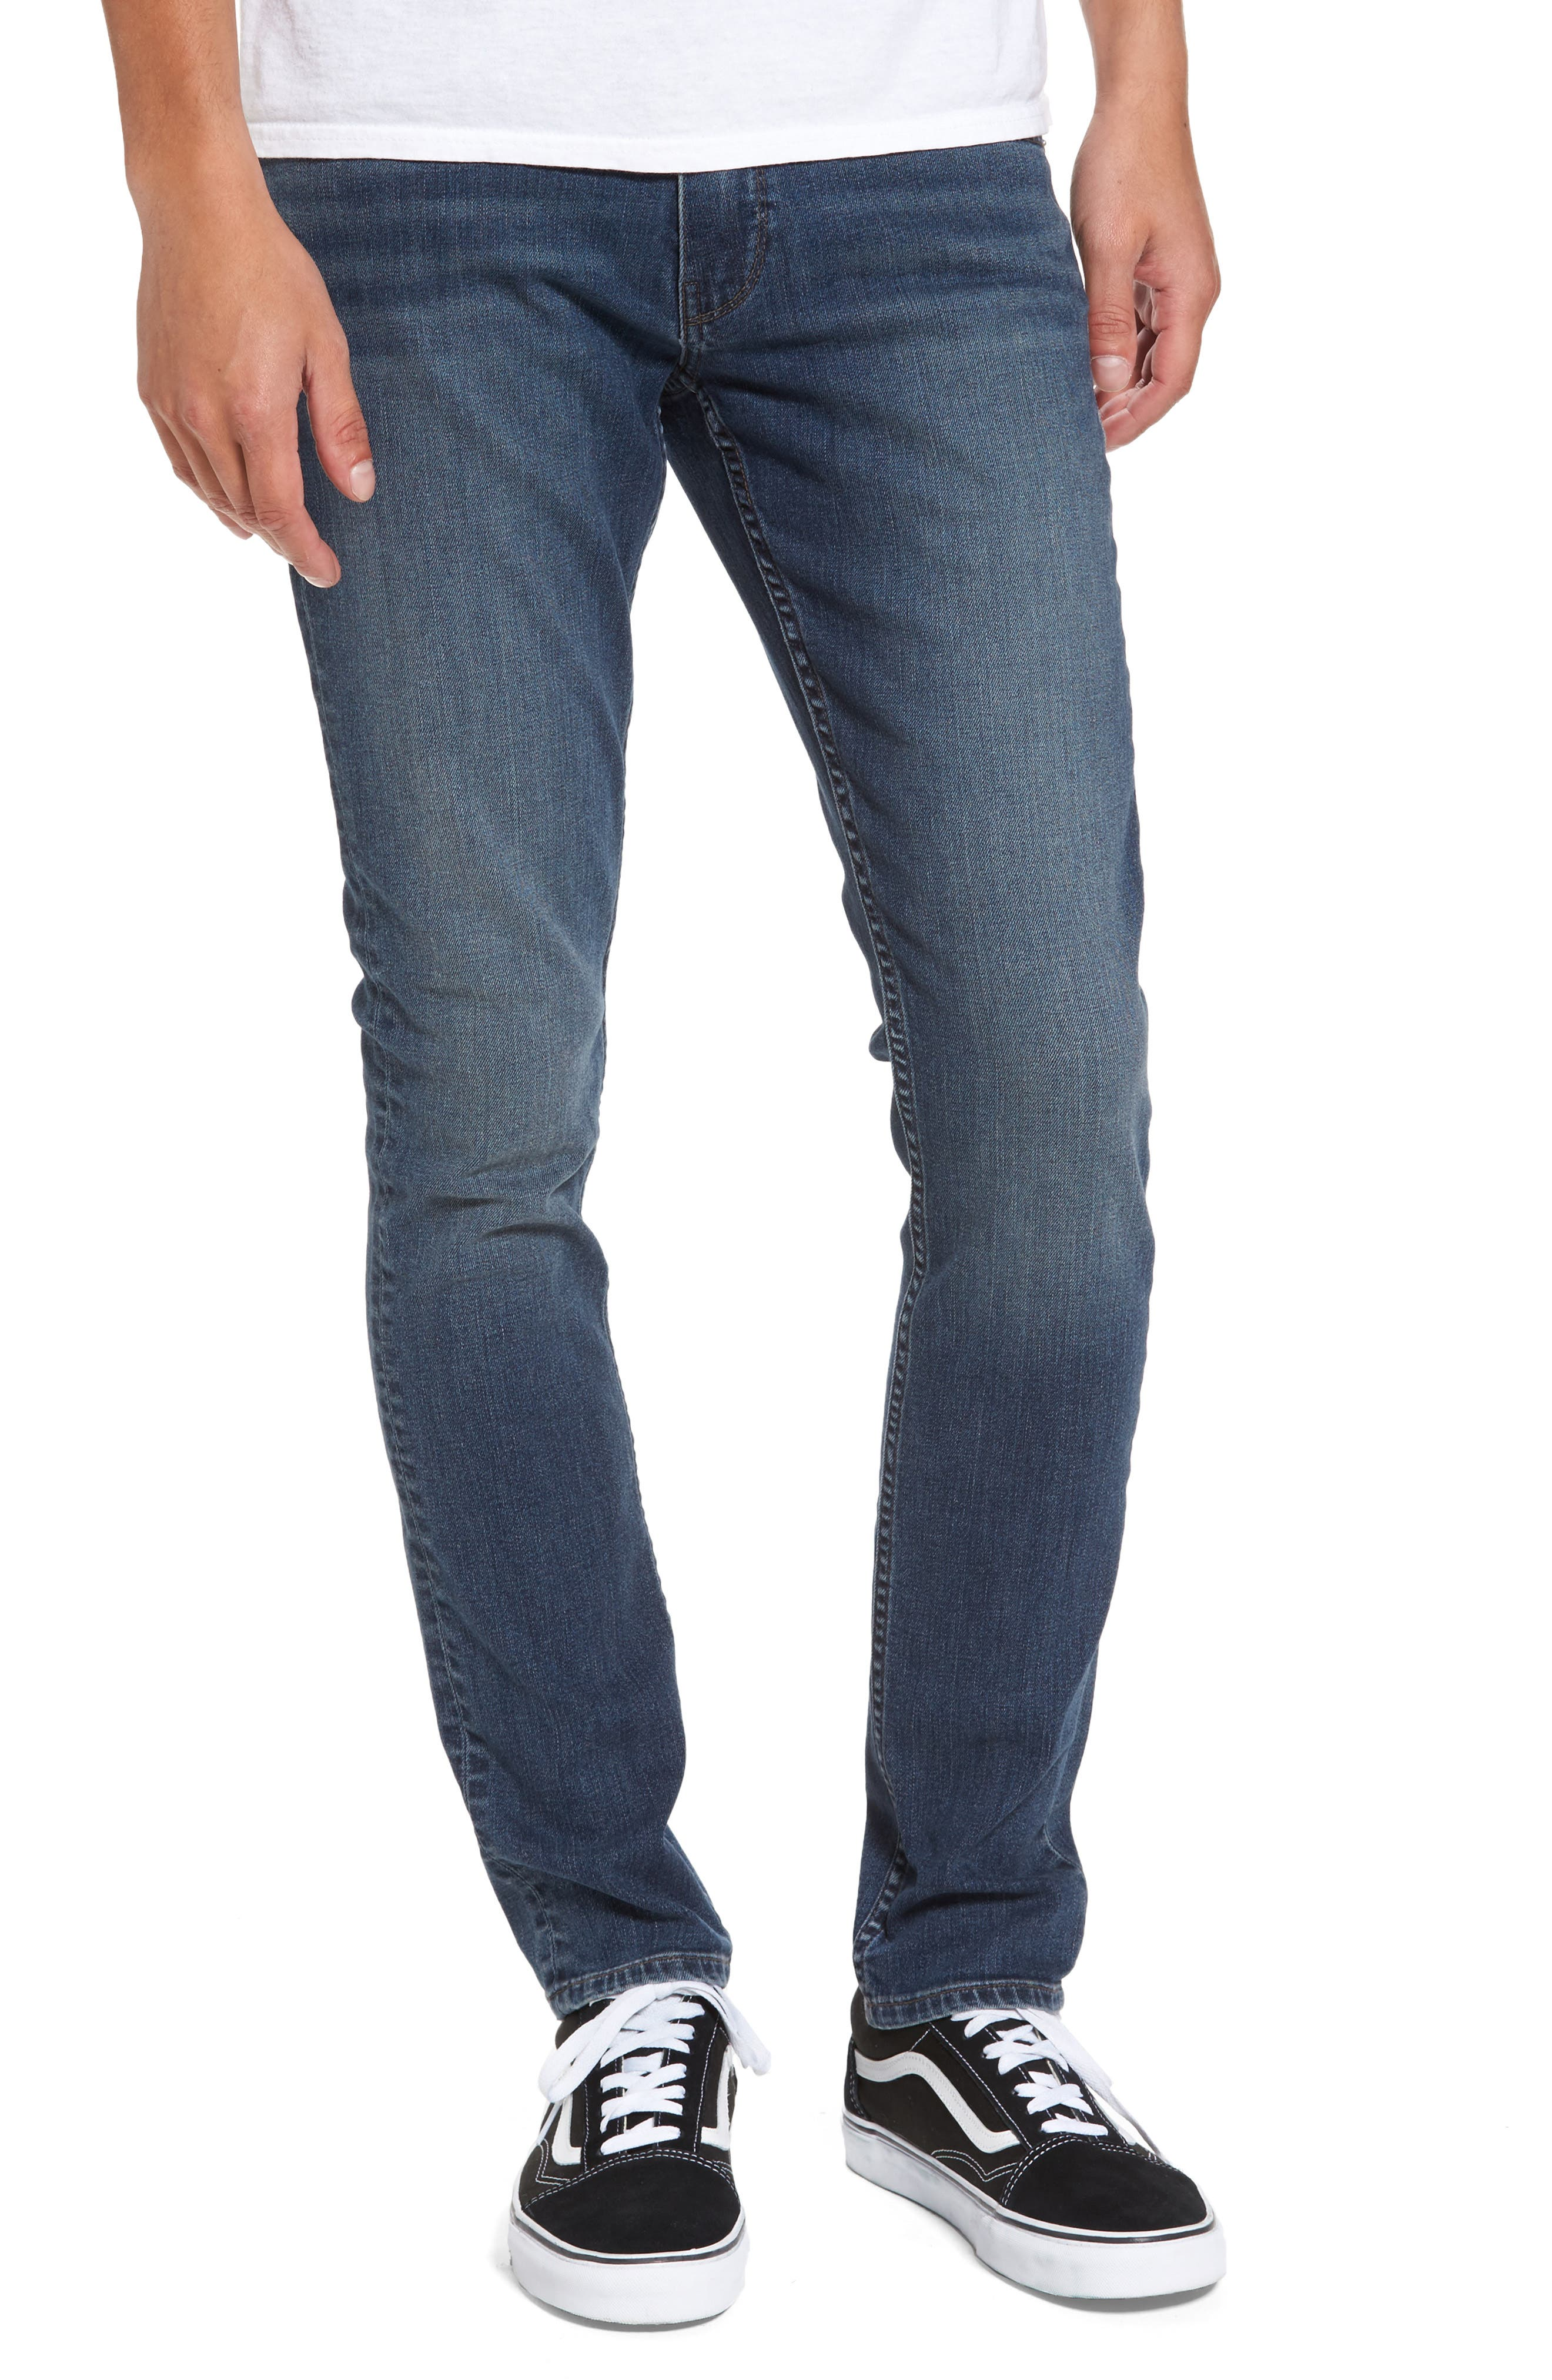 Legacy - Croft Skinny Jeans,                         Main,                         color, 400